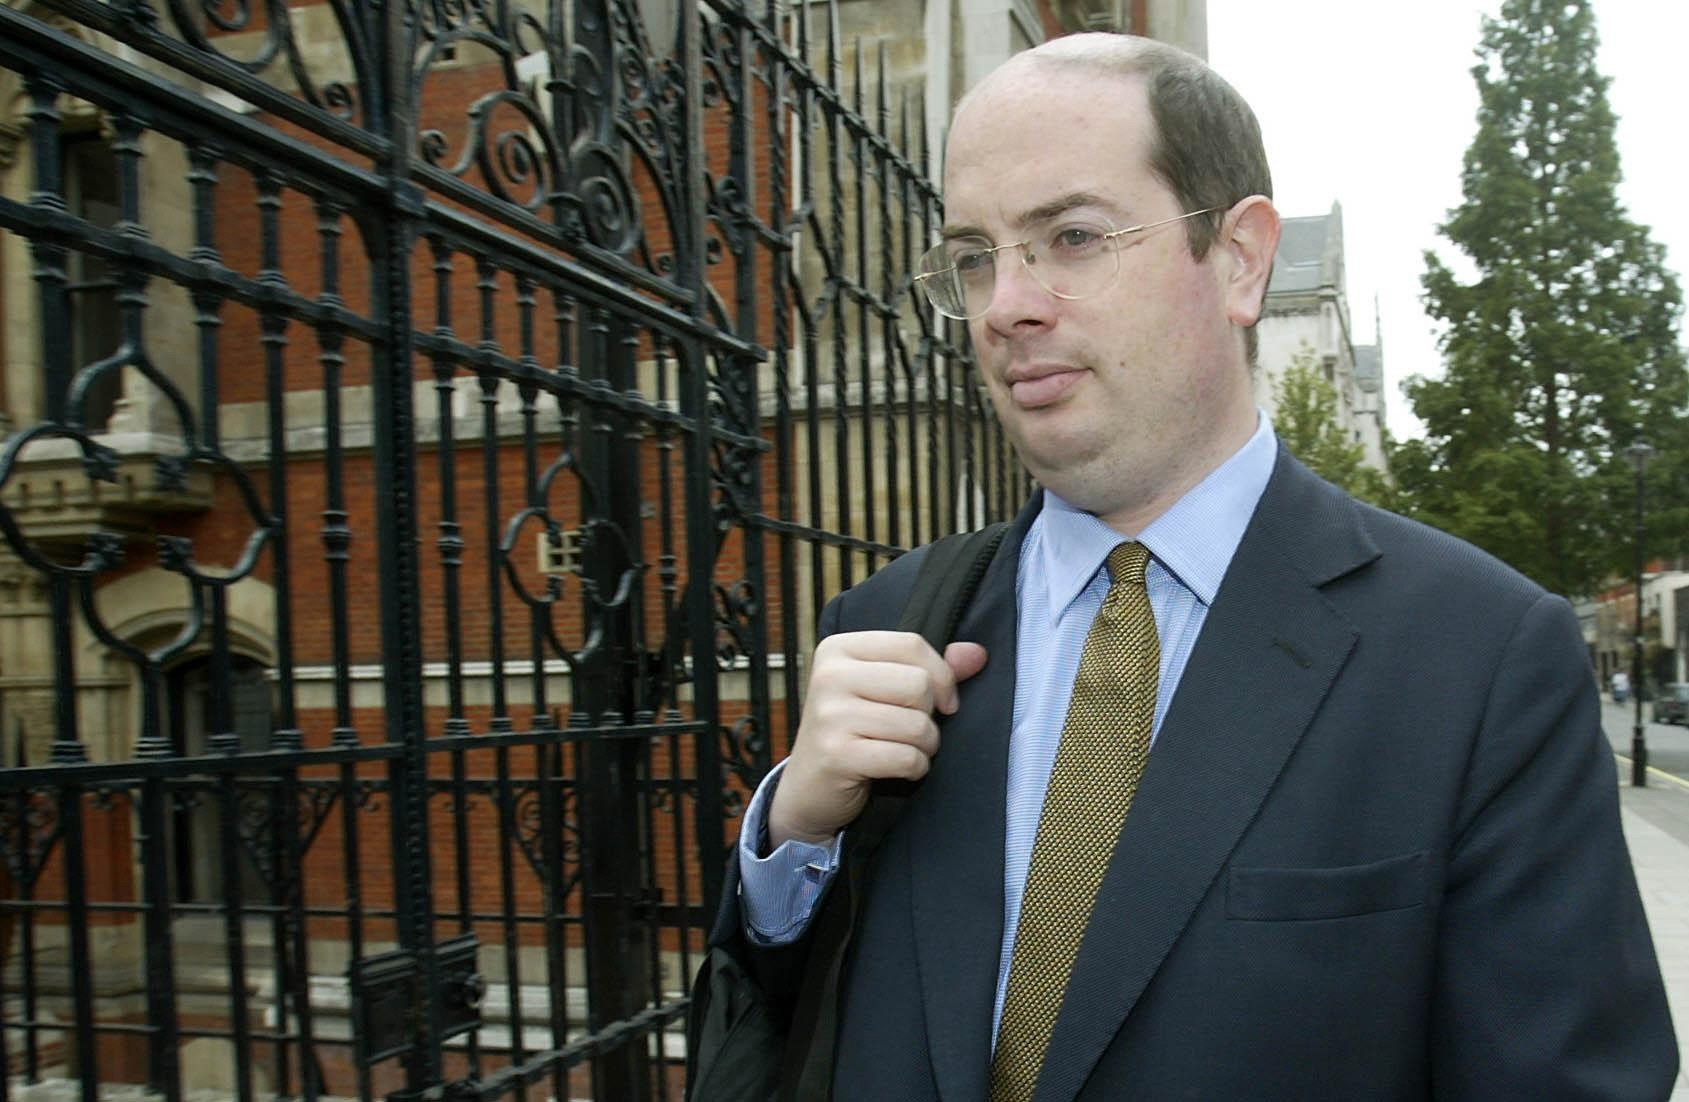 Andrew Gilligan, formerly of the BBC, has been appointed a Cycling Czar by mayor Boris Johnson